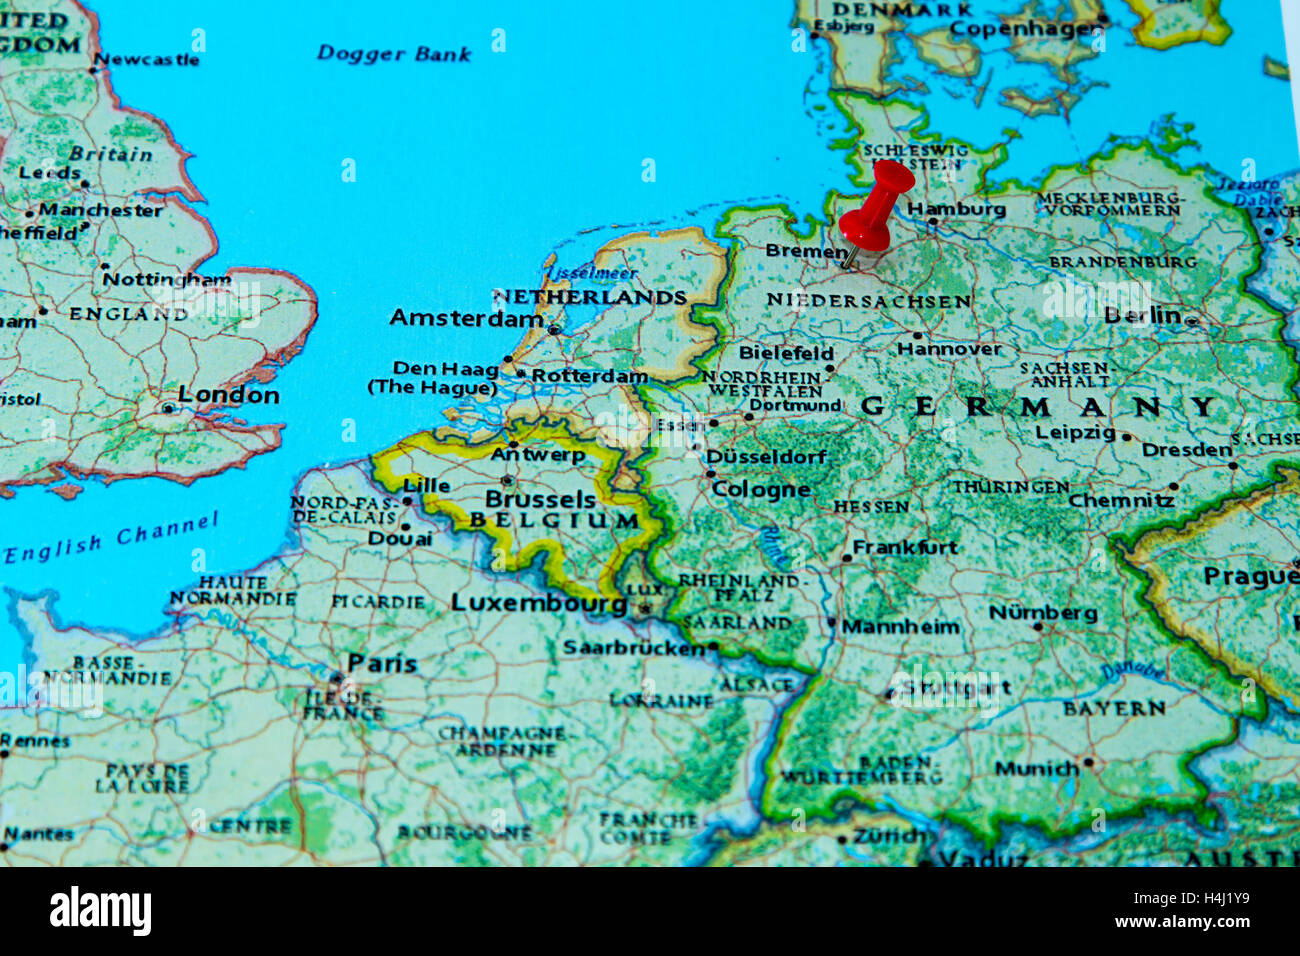 Bremen, Germany pinned on a map of Europe Stock Photo: 123327885 - Alamy